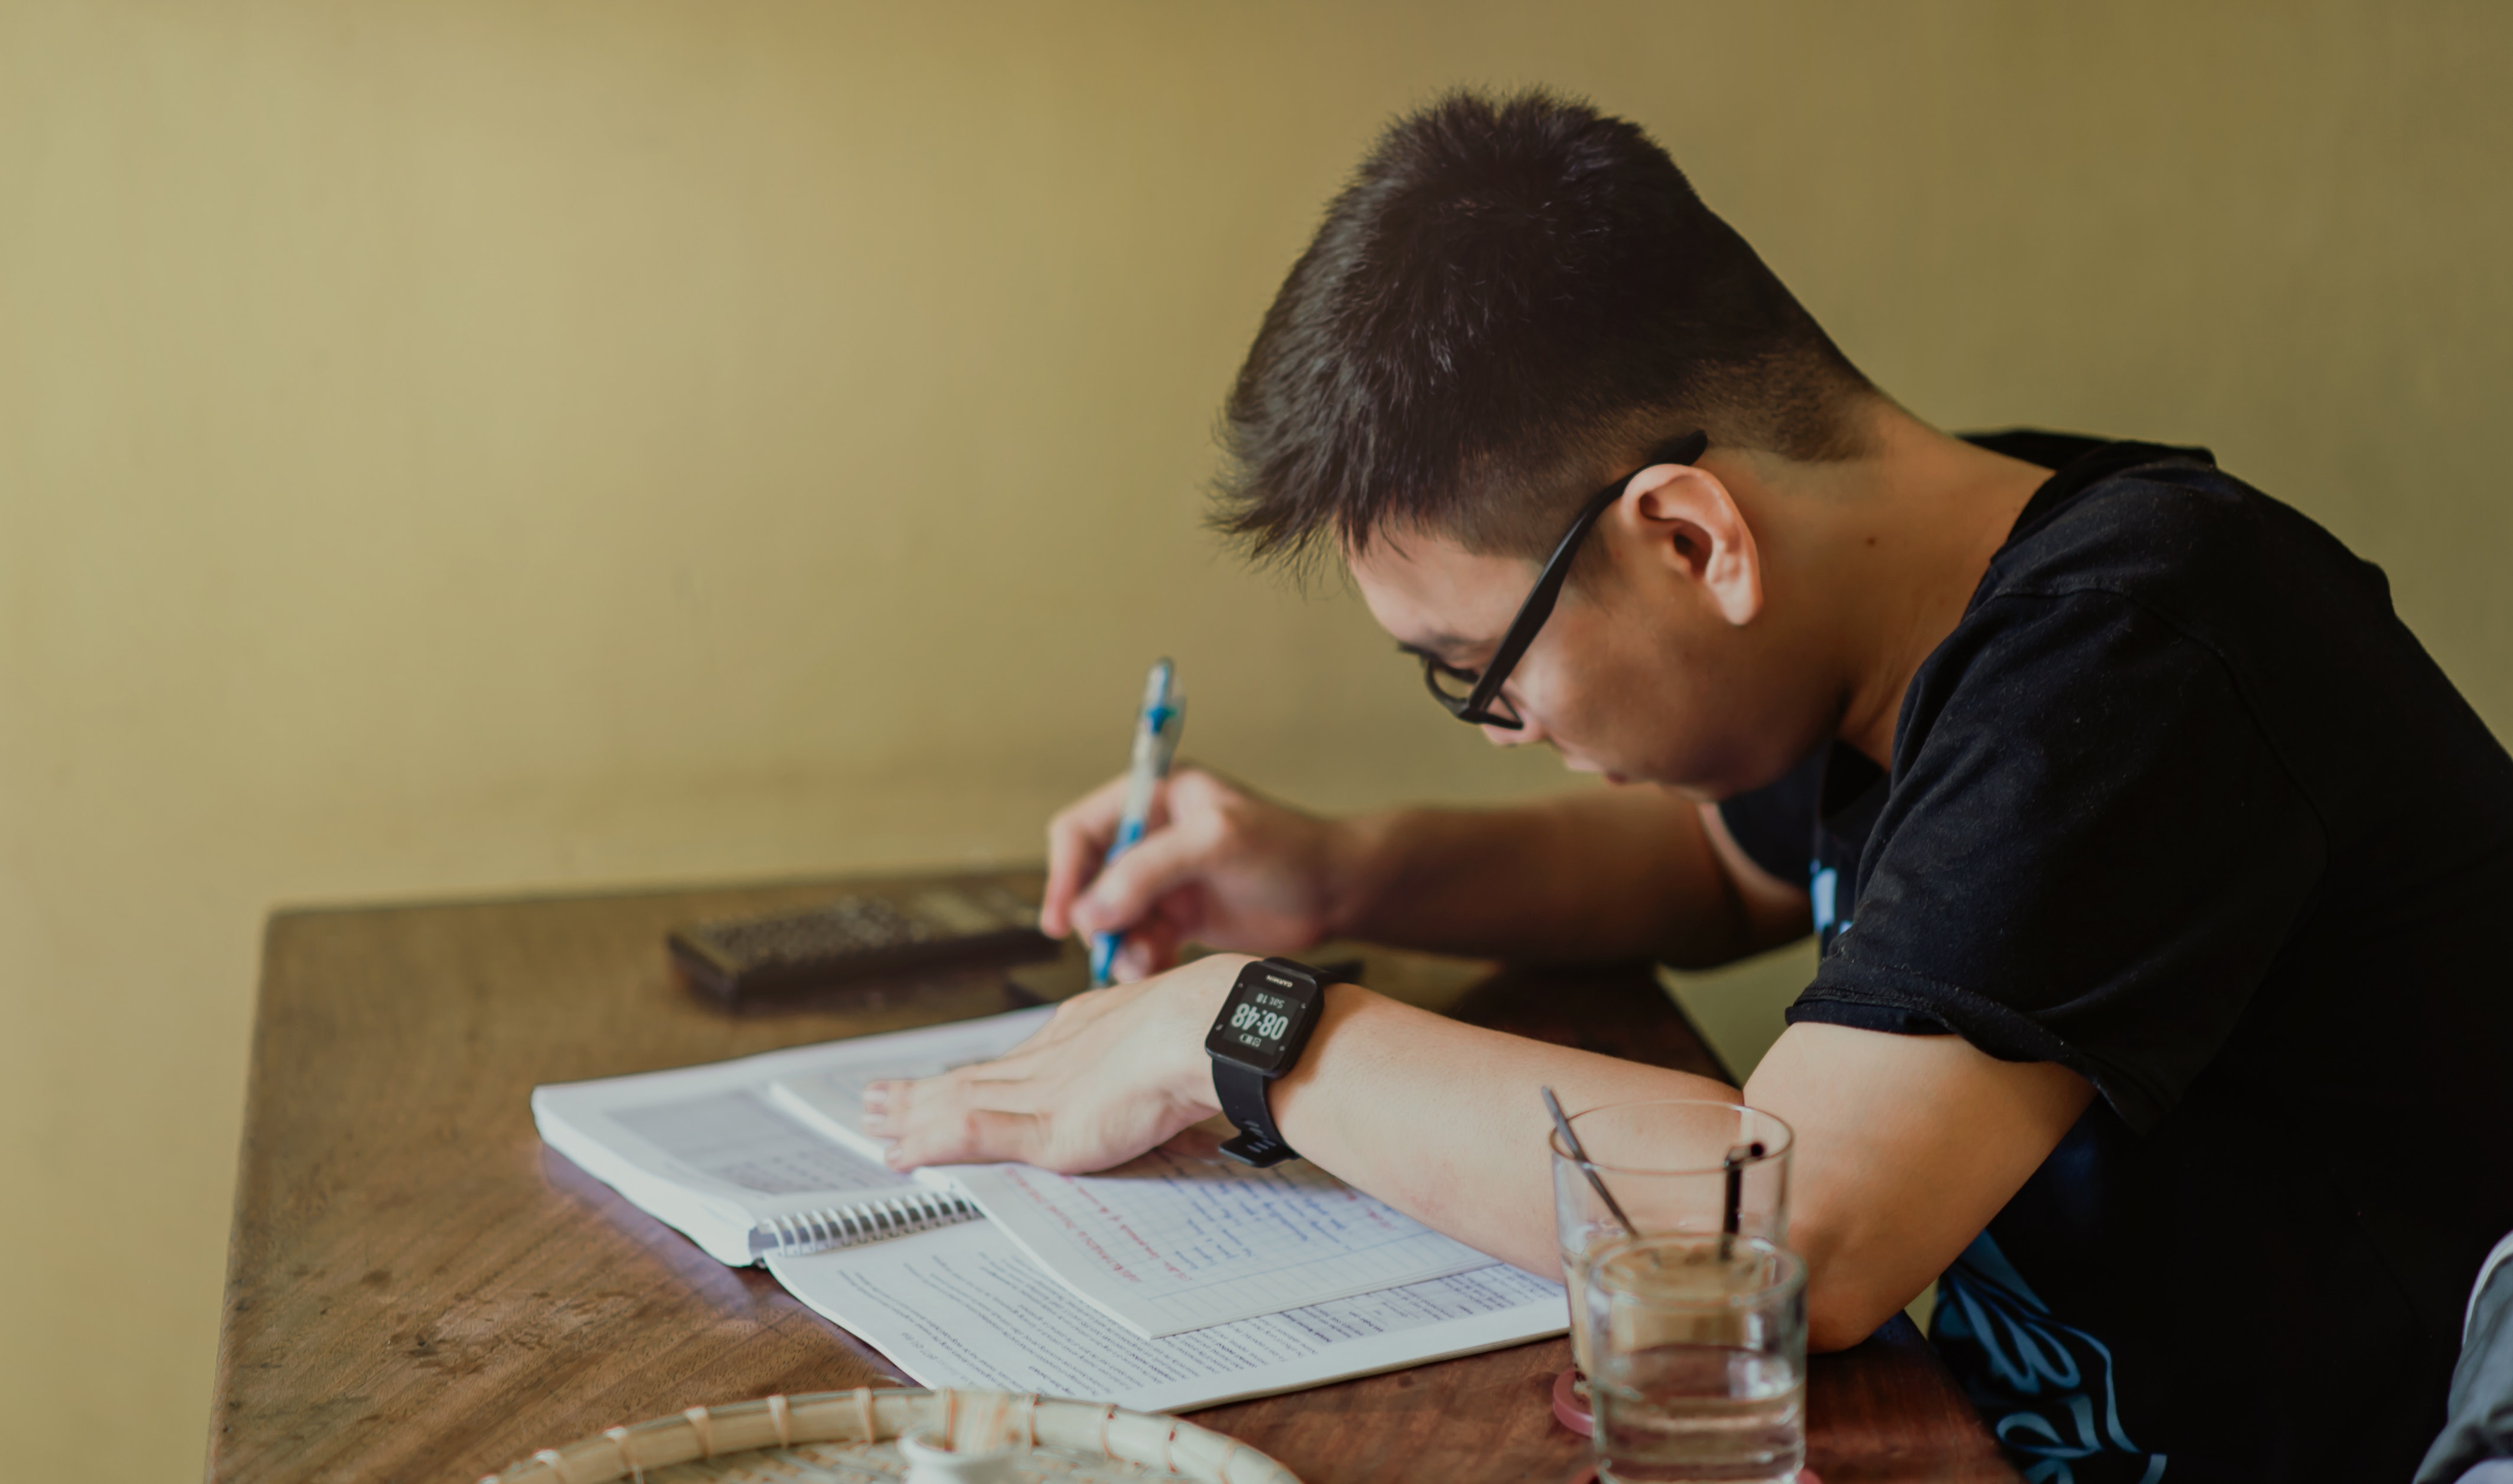 Man in Black Shirt Sitting and Writing, Concentration, Person, Writing, Wrist watch, HQ Photo